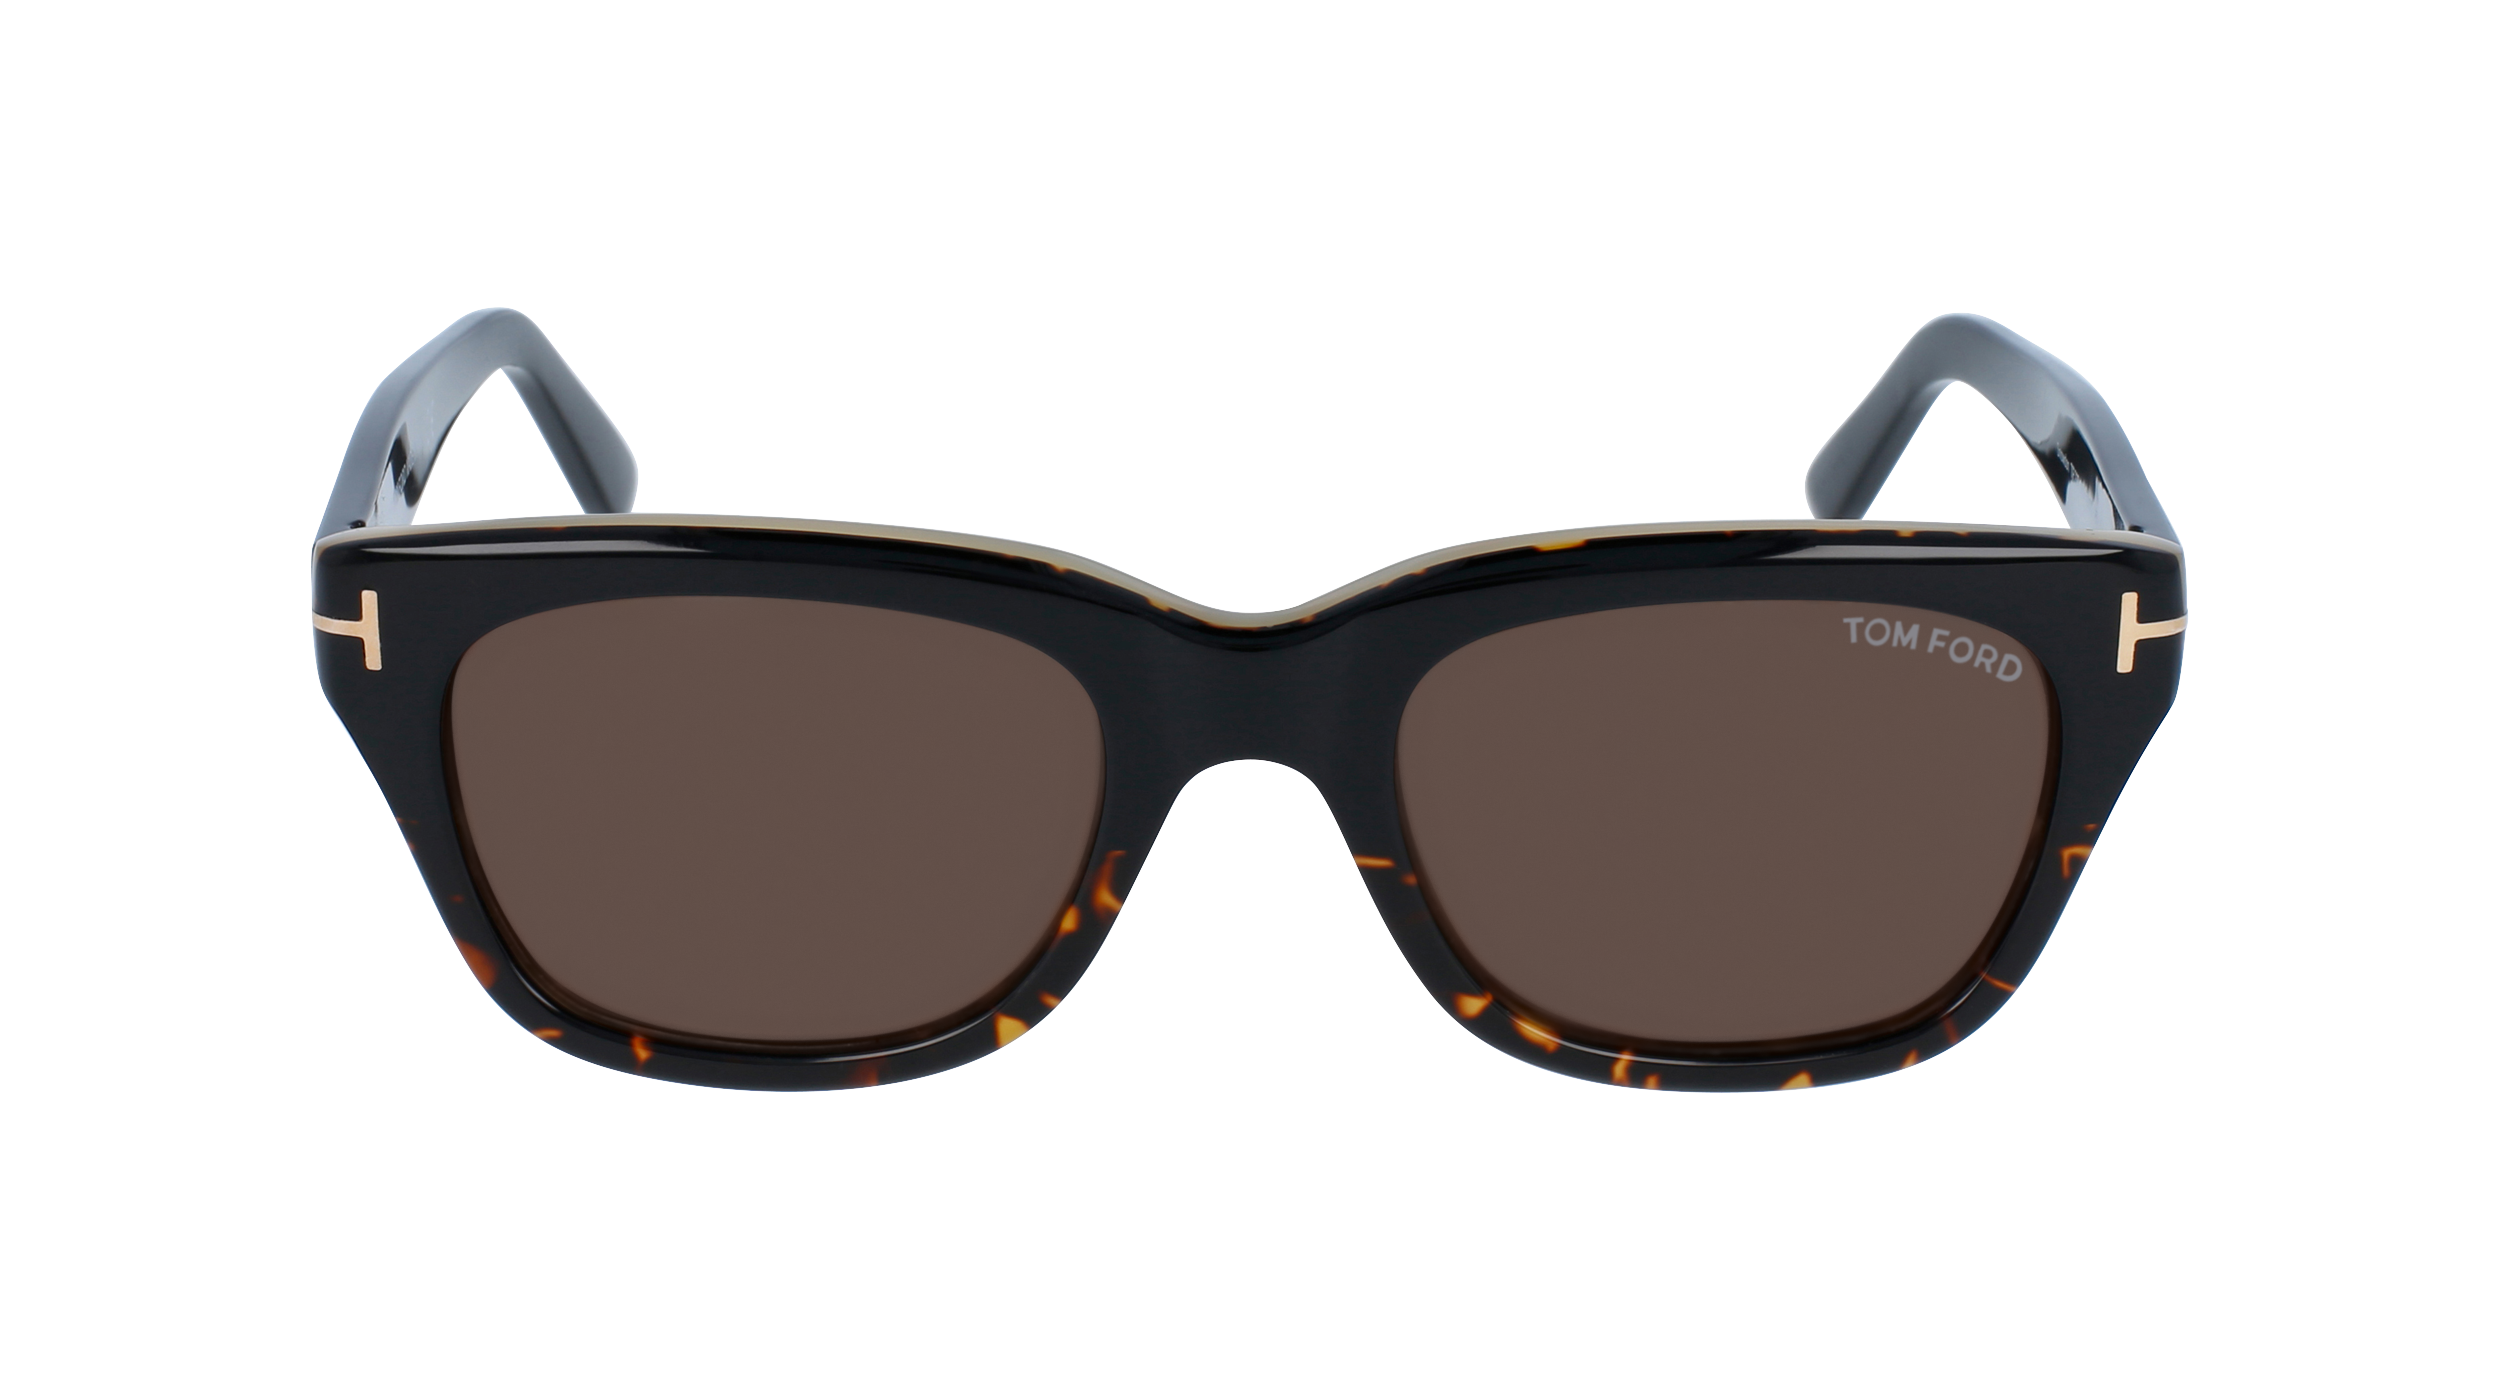 Optic2000 Lunettes Soleil Tom Ford